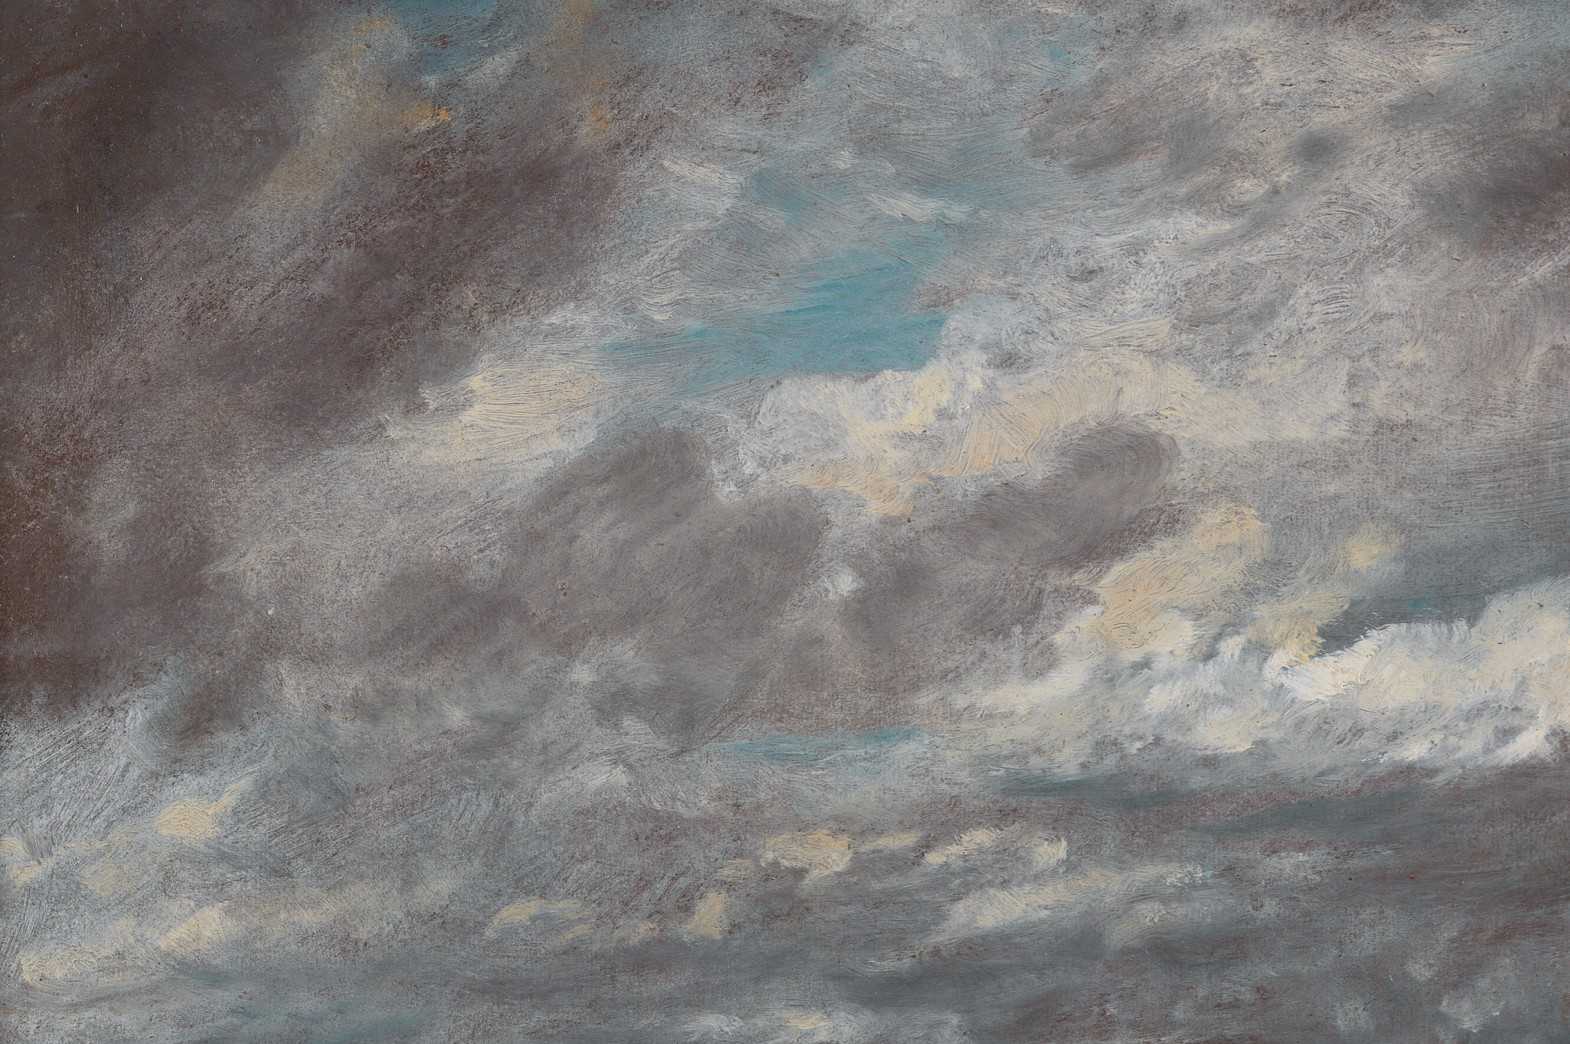 Seeing Constable's Clouds